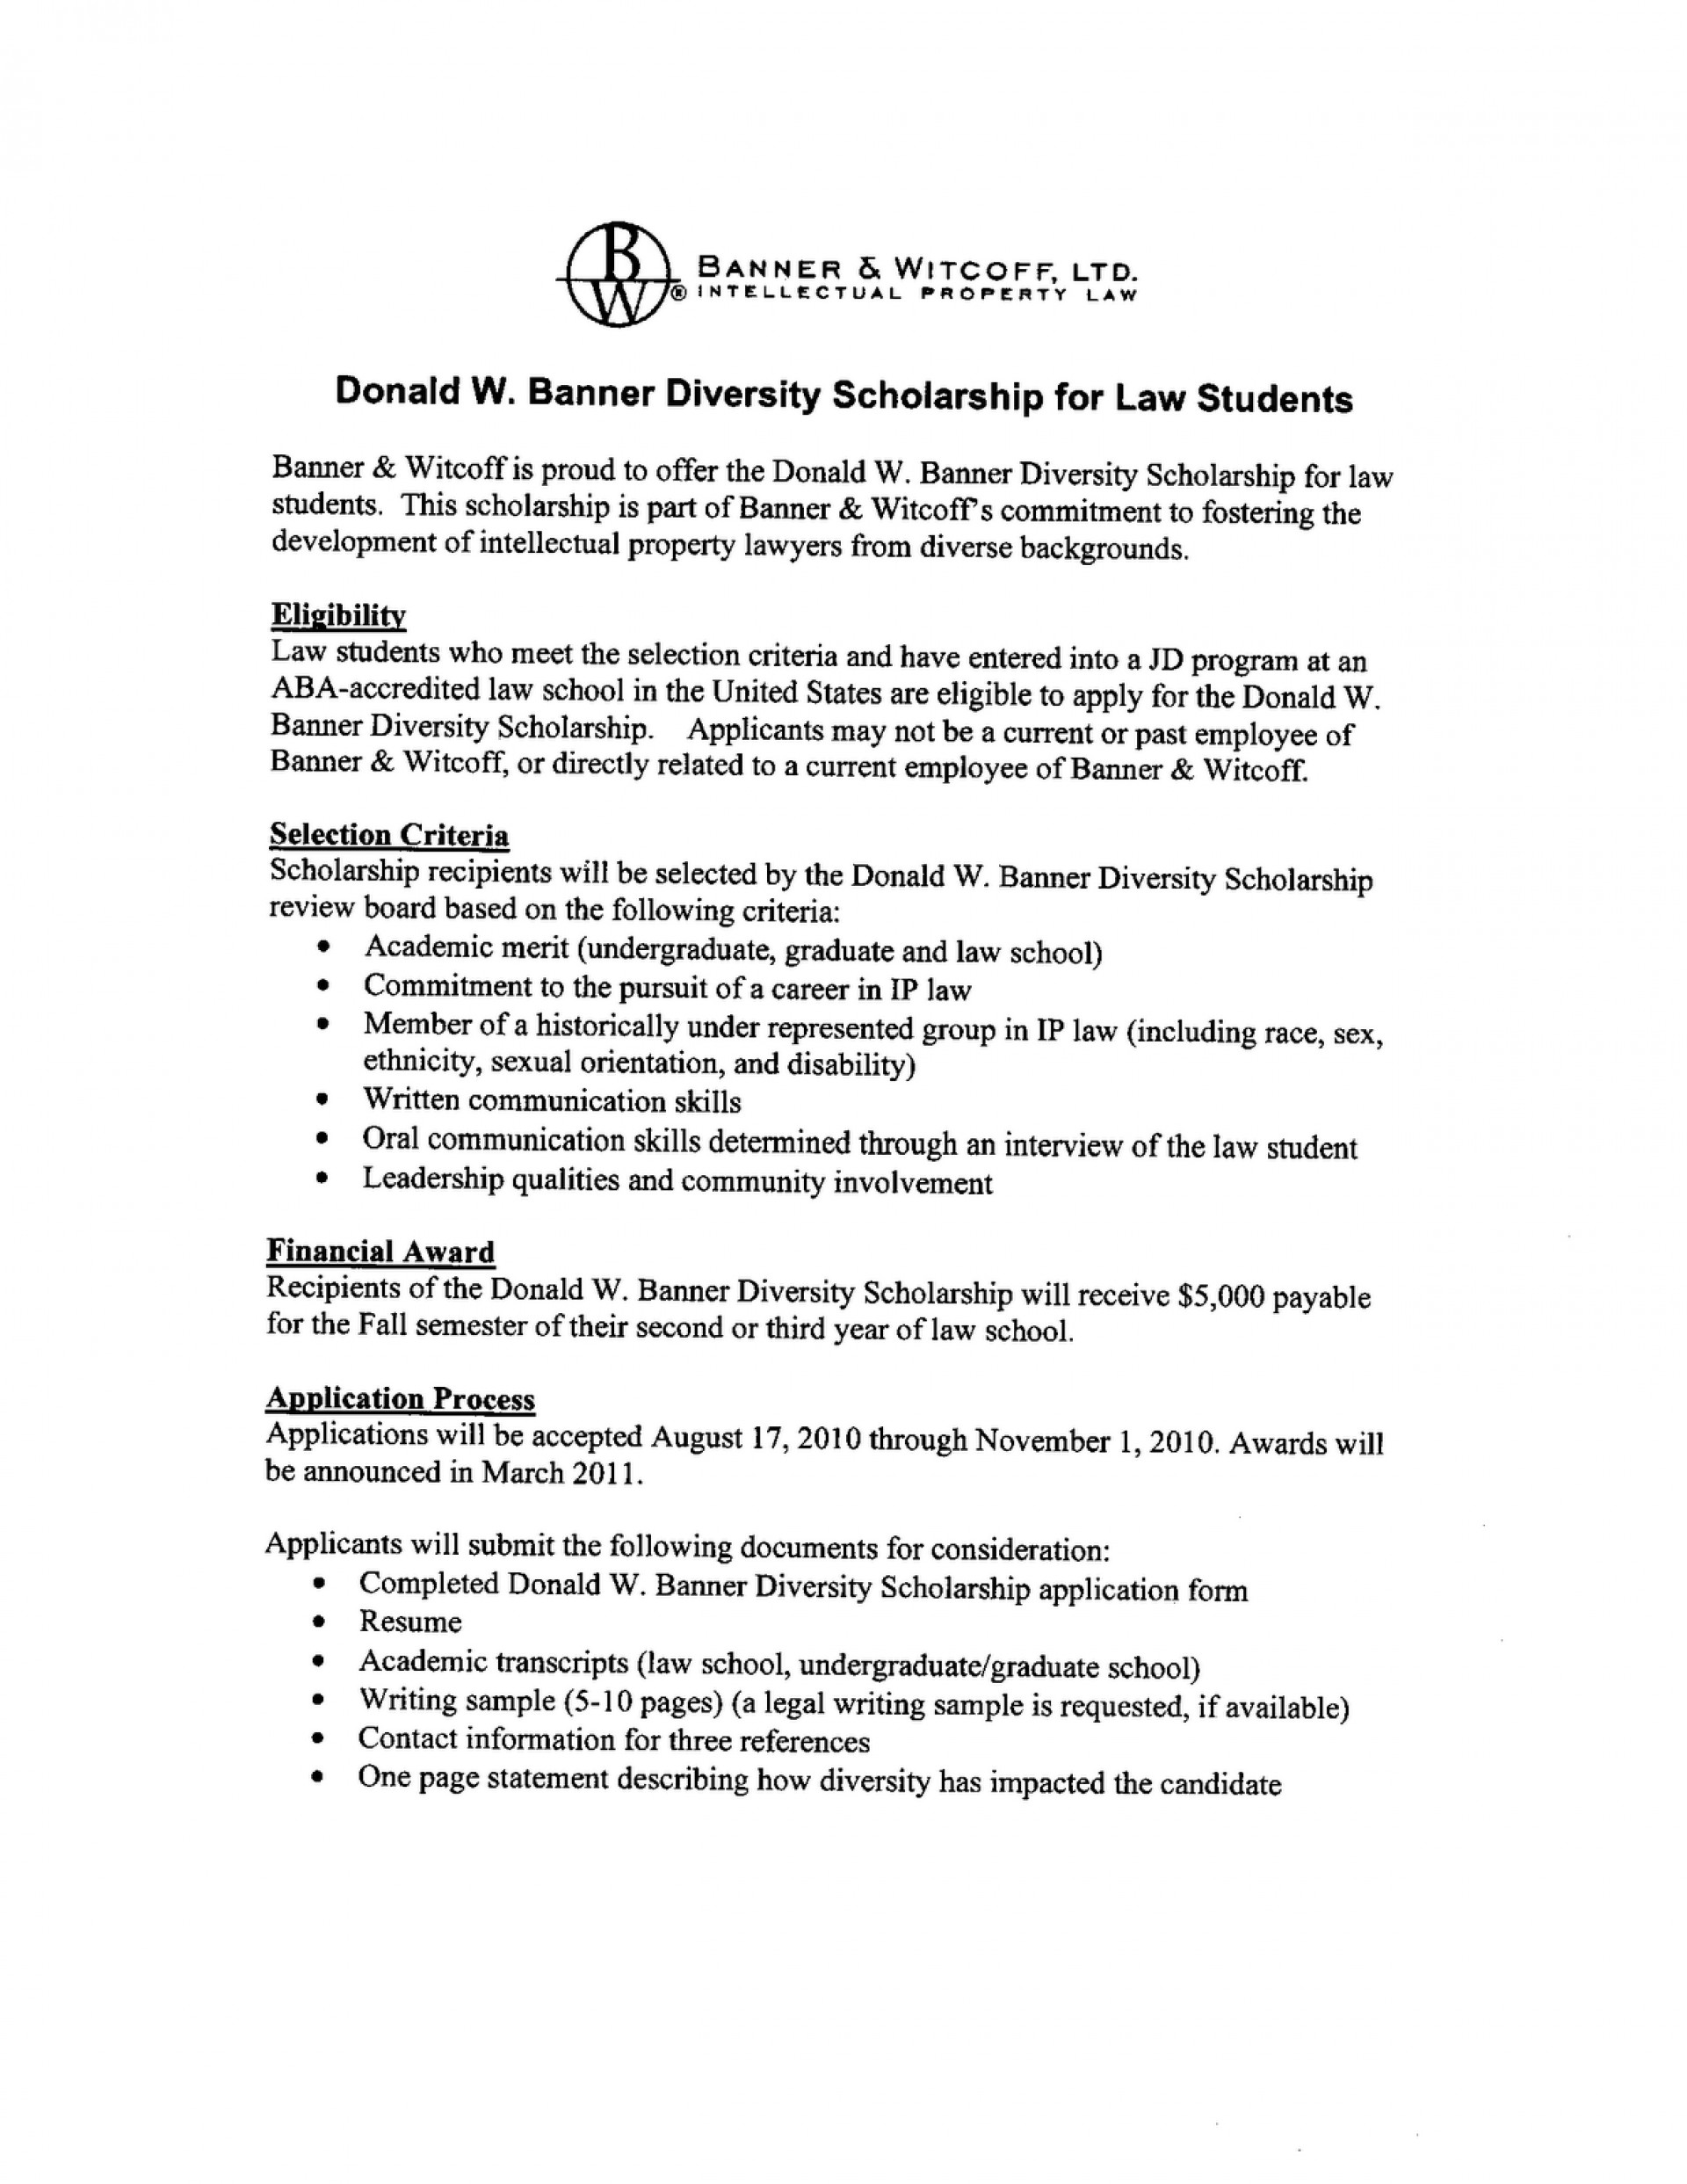 027 Sample Scholarship Essays Ww Essay How To Write Good For College Scholarships Outline With Additional Form Personal Singular Without Writing High School Juniors Class Of 2020 No 2019 1920